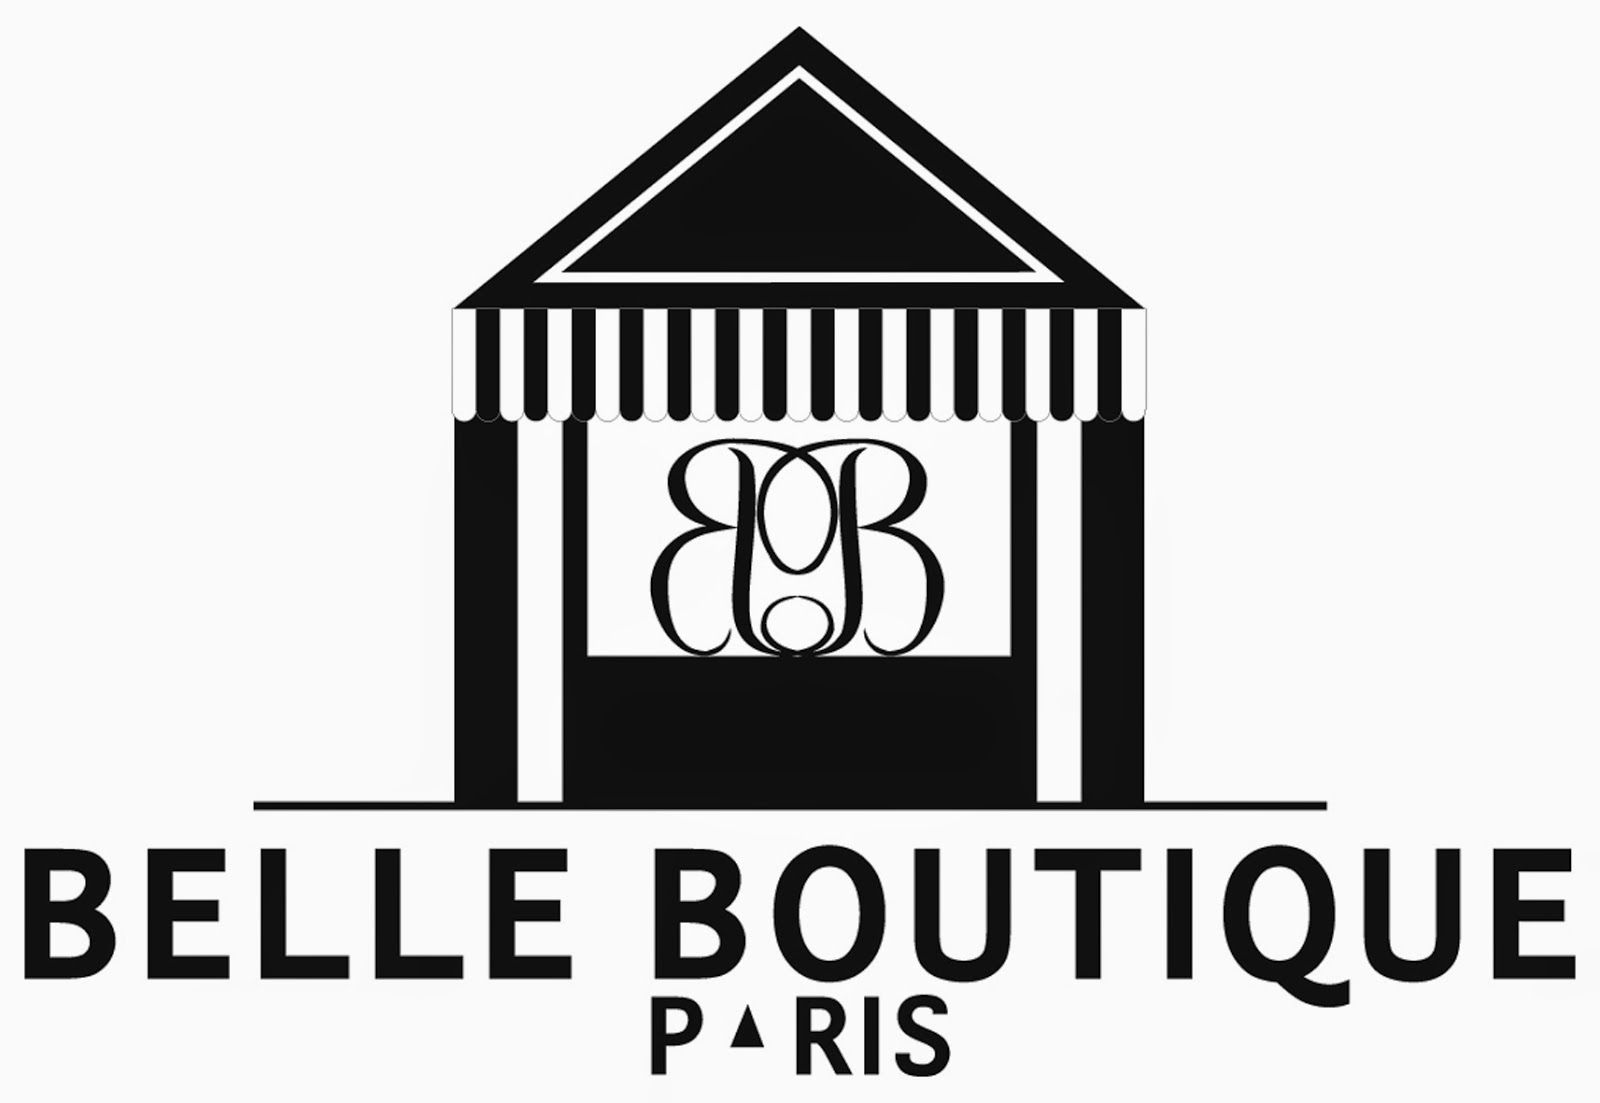 ▲ Belle Boutique logo ▲